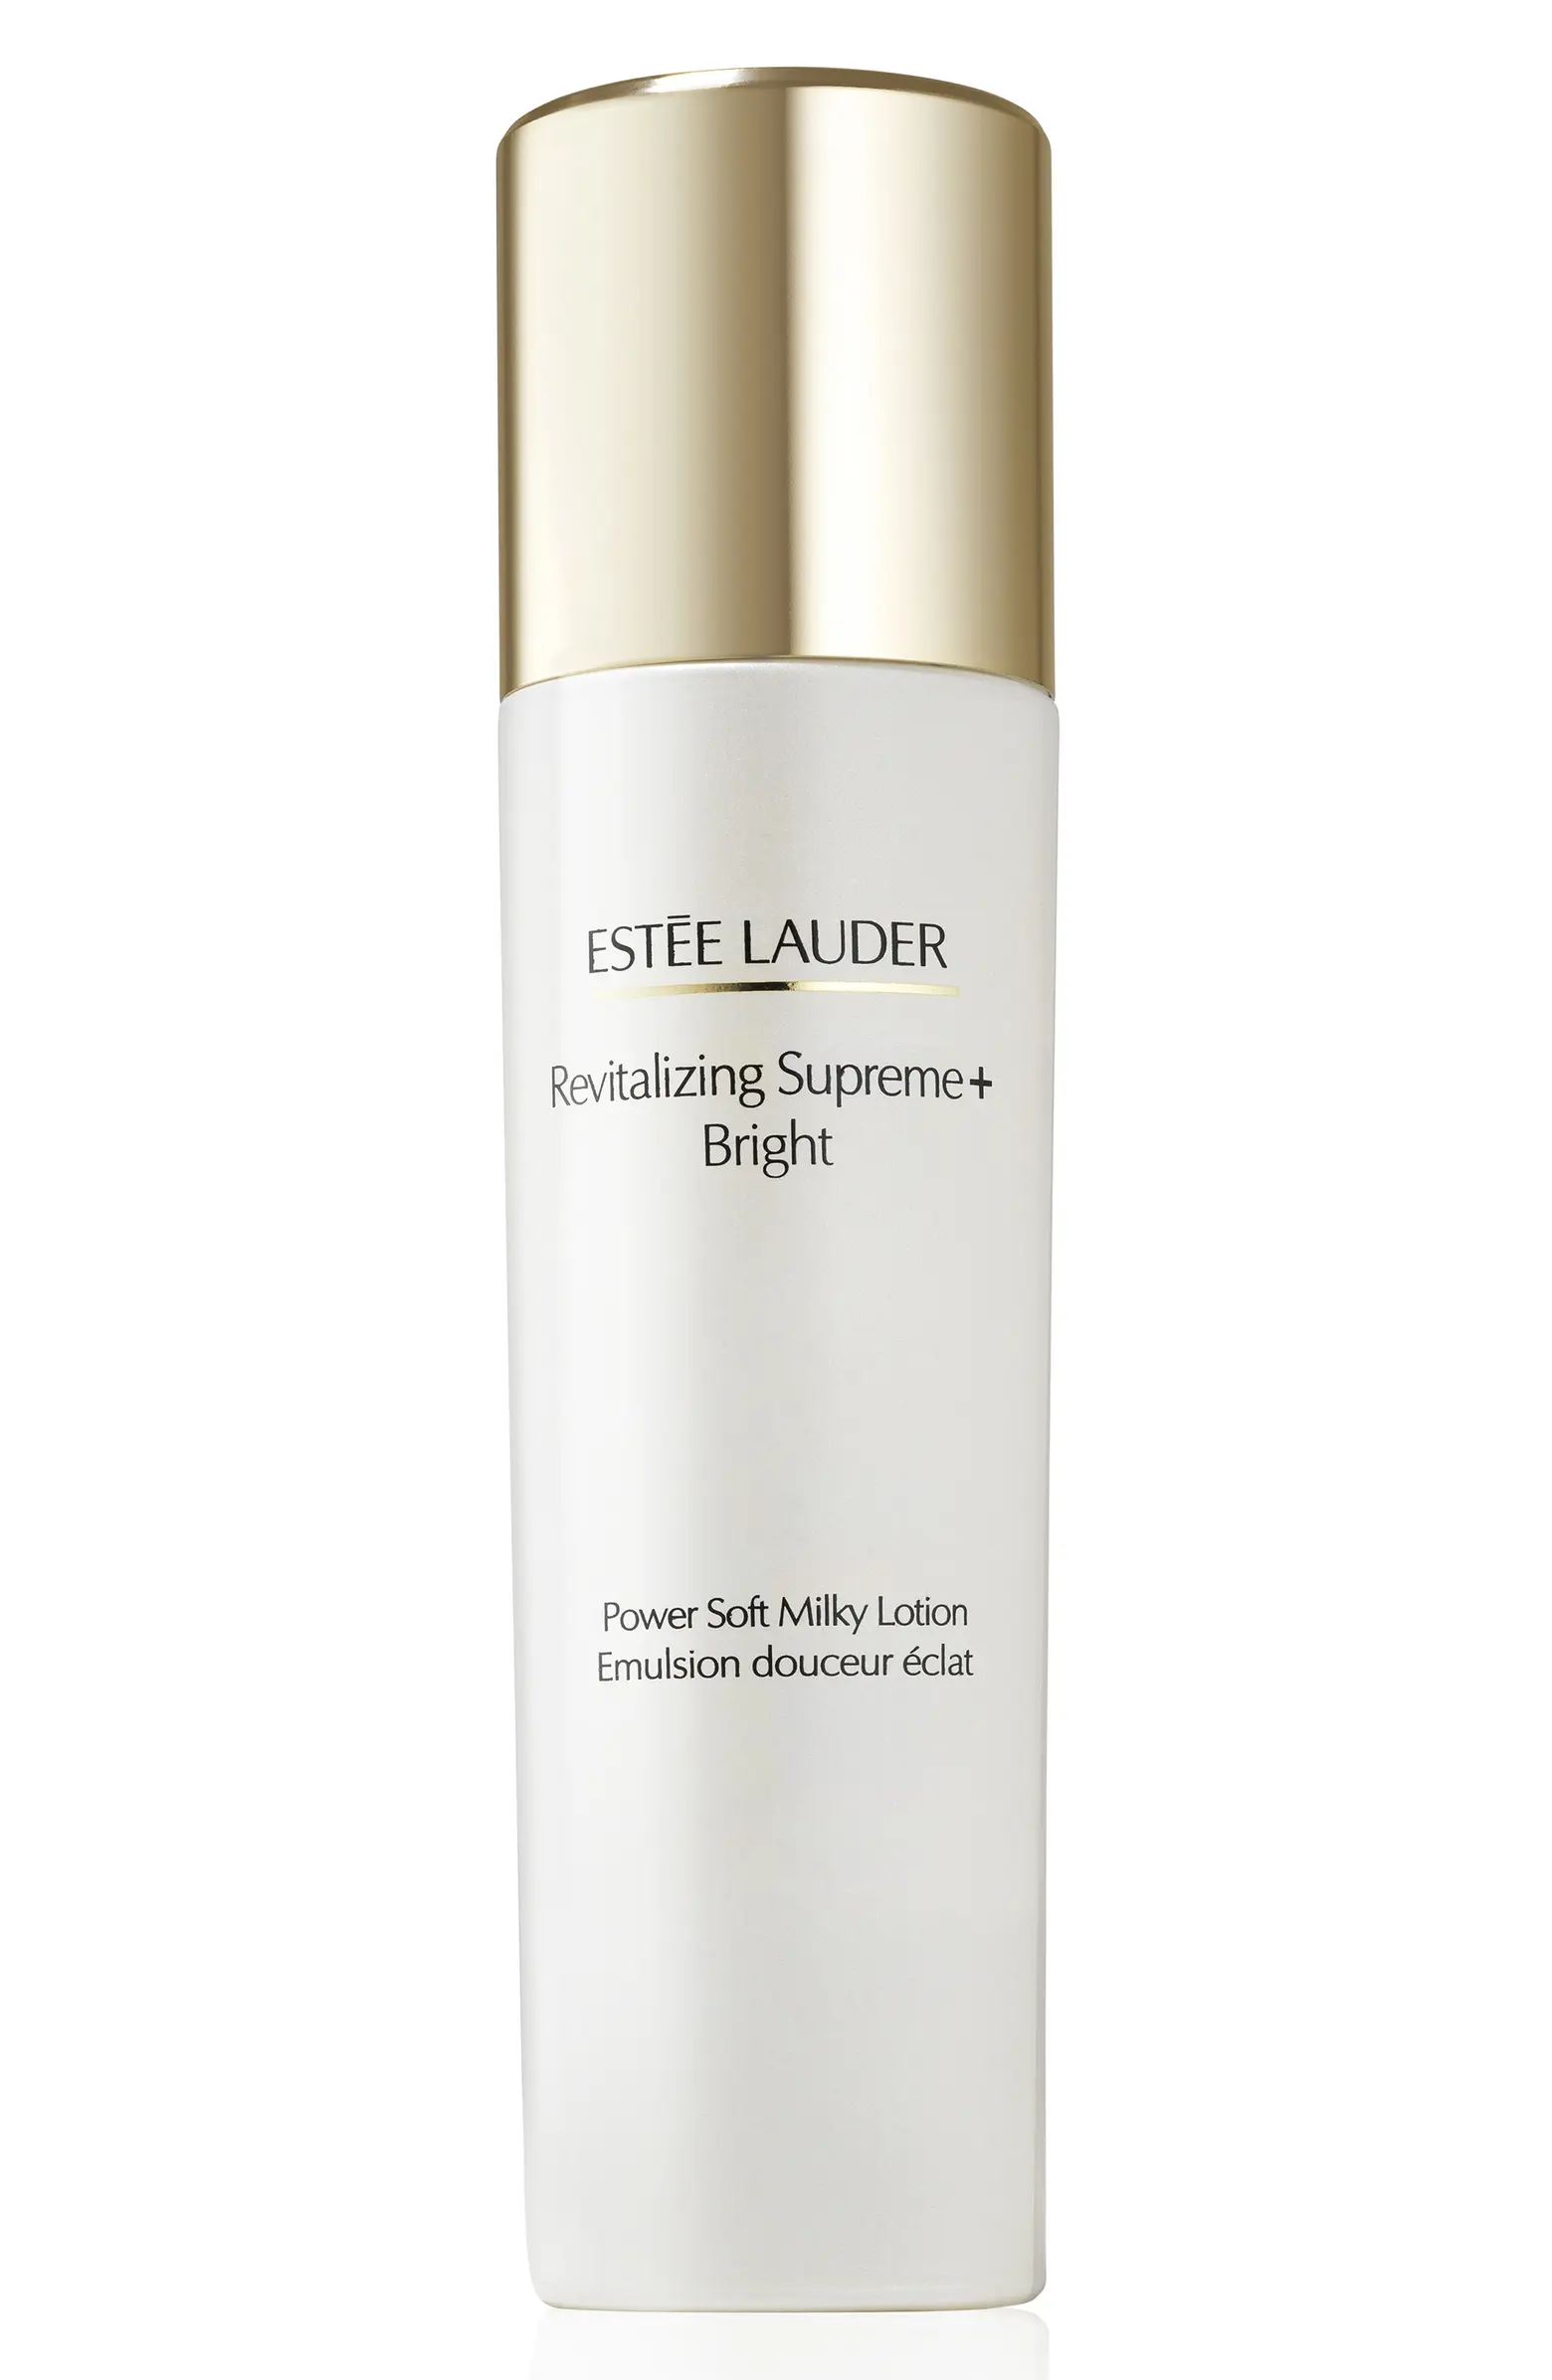 Estee Lauder Revitalizing Supreme+ Bright Power Soft Milky Lotion